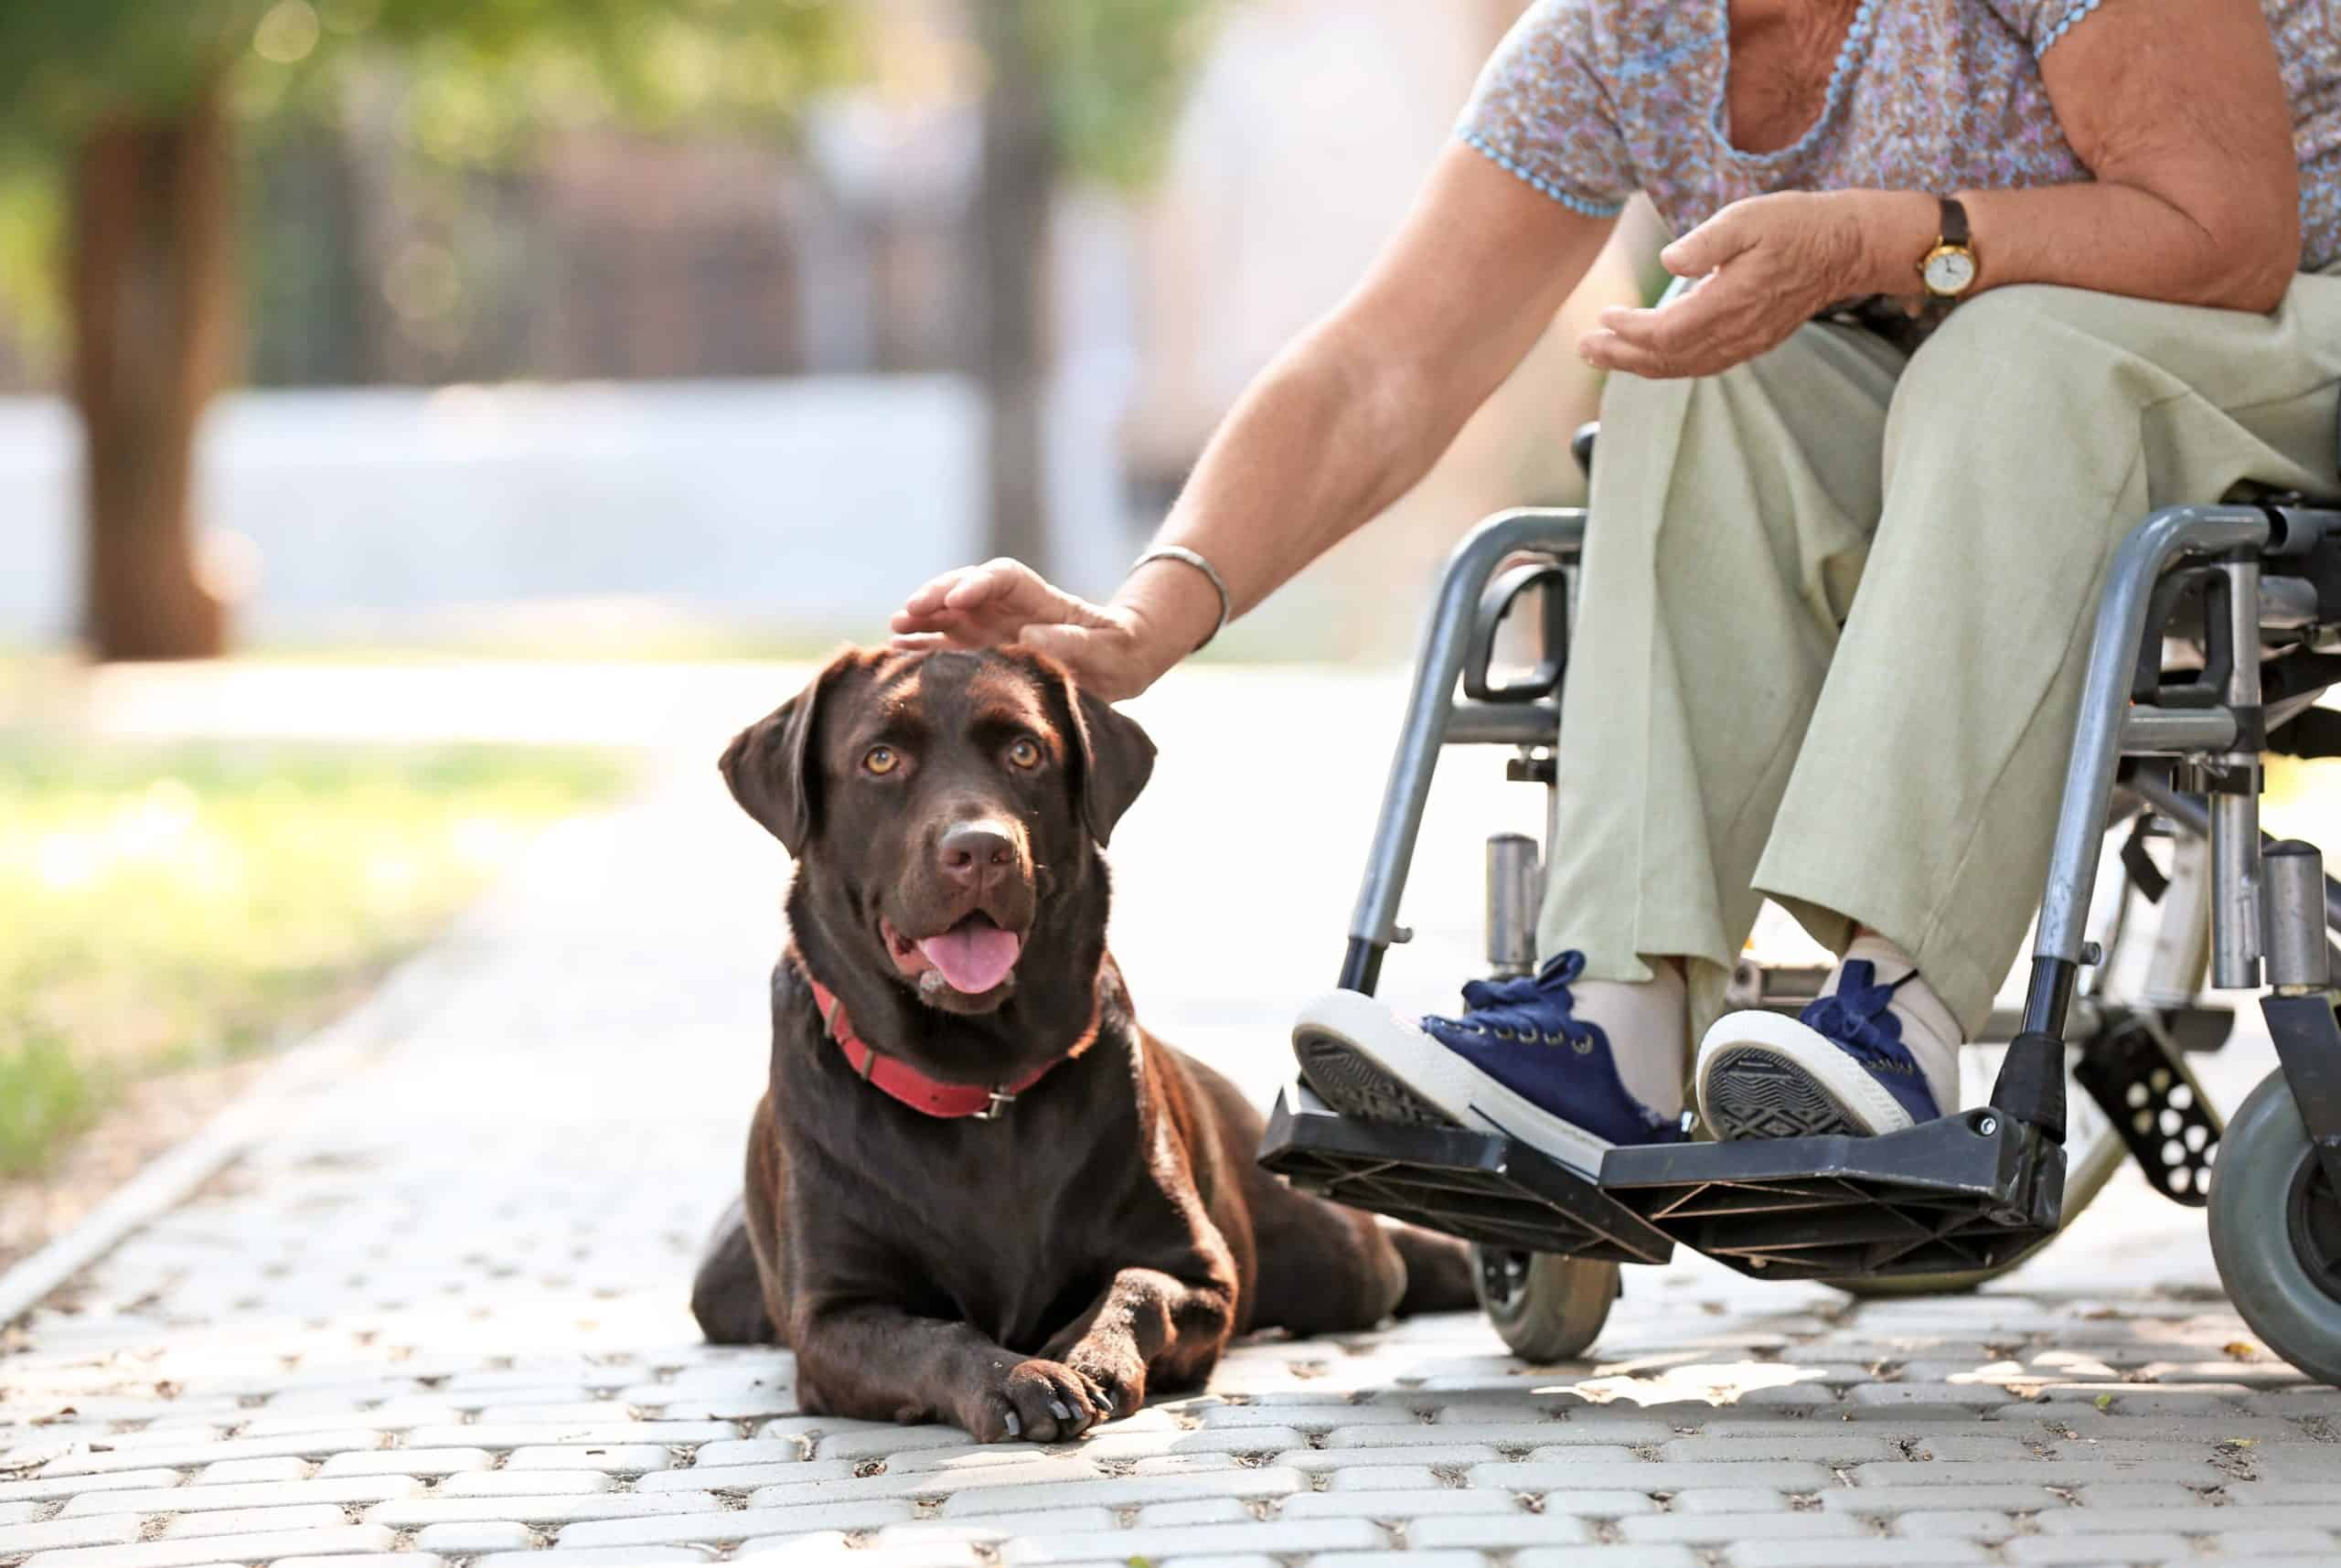 Woman in wheelchair pets chocolate Labrador Retriever. While you don't legally need to certify your dog, it's easier to show documentation rather than get into a legal argument about service dogs.